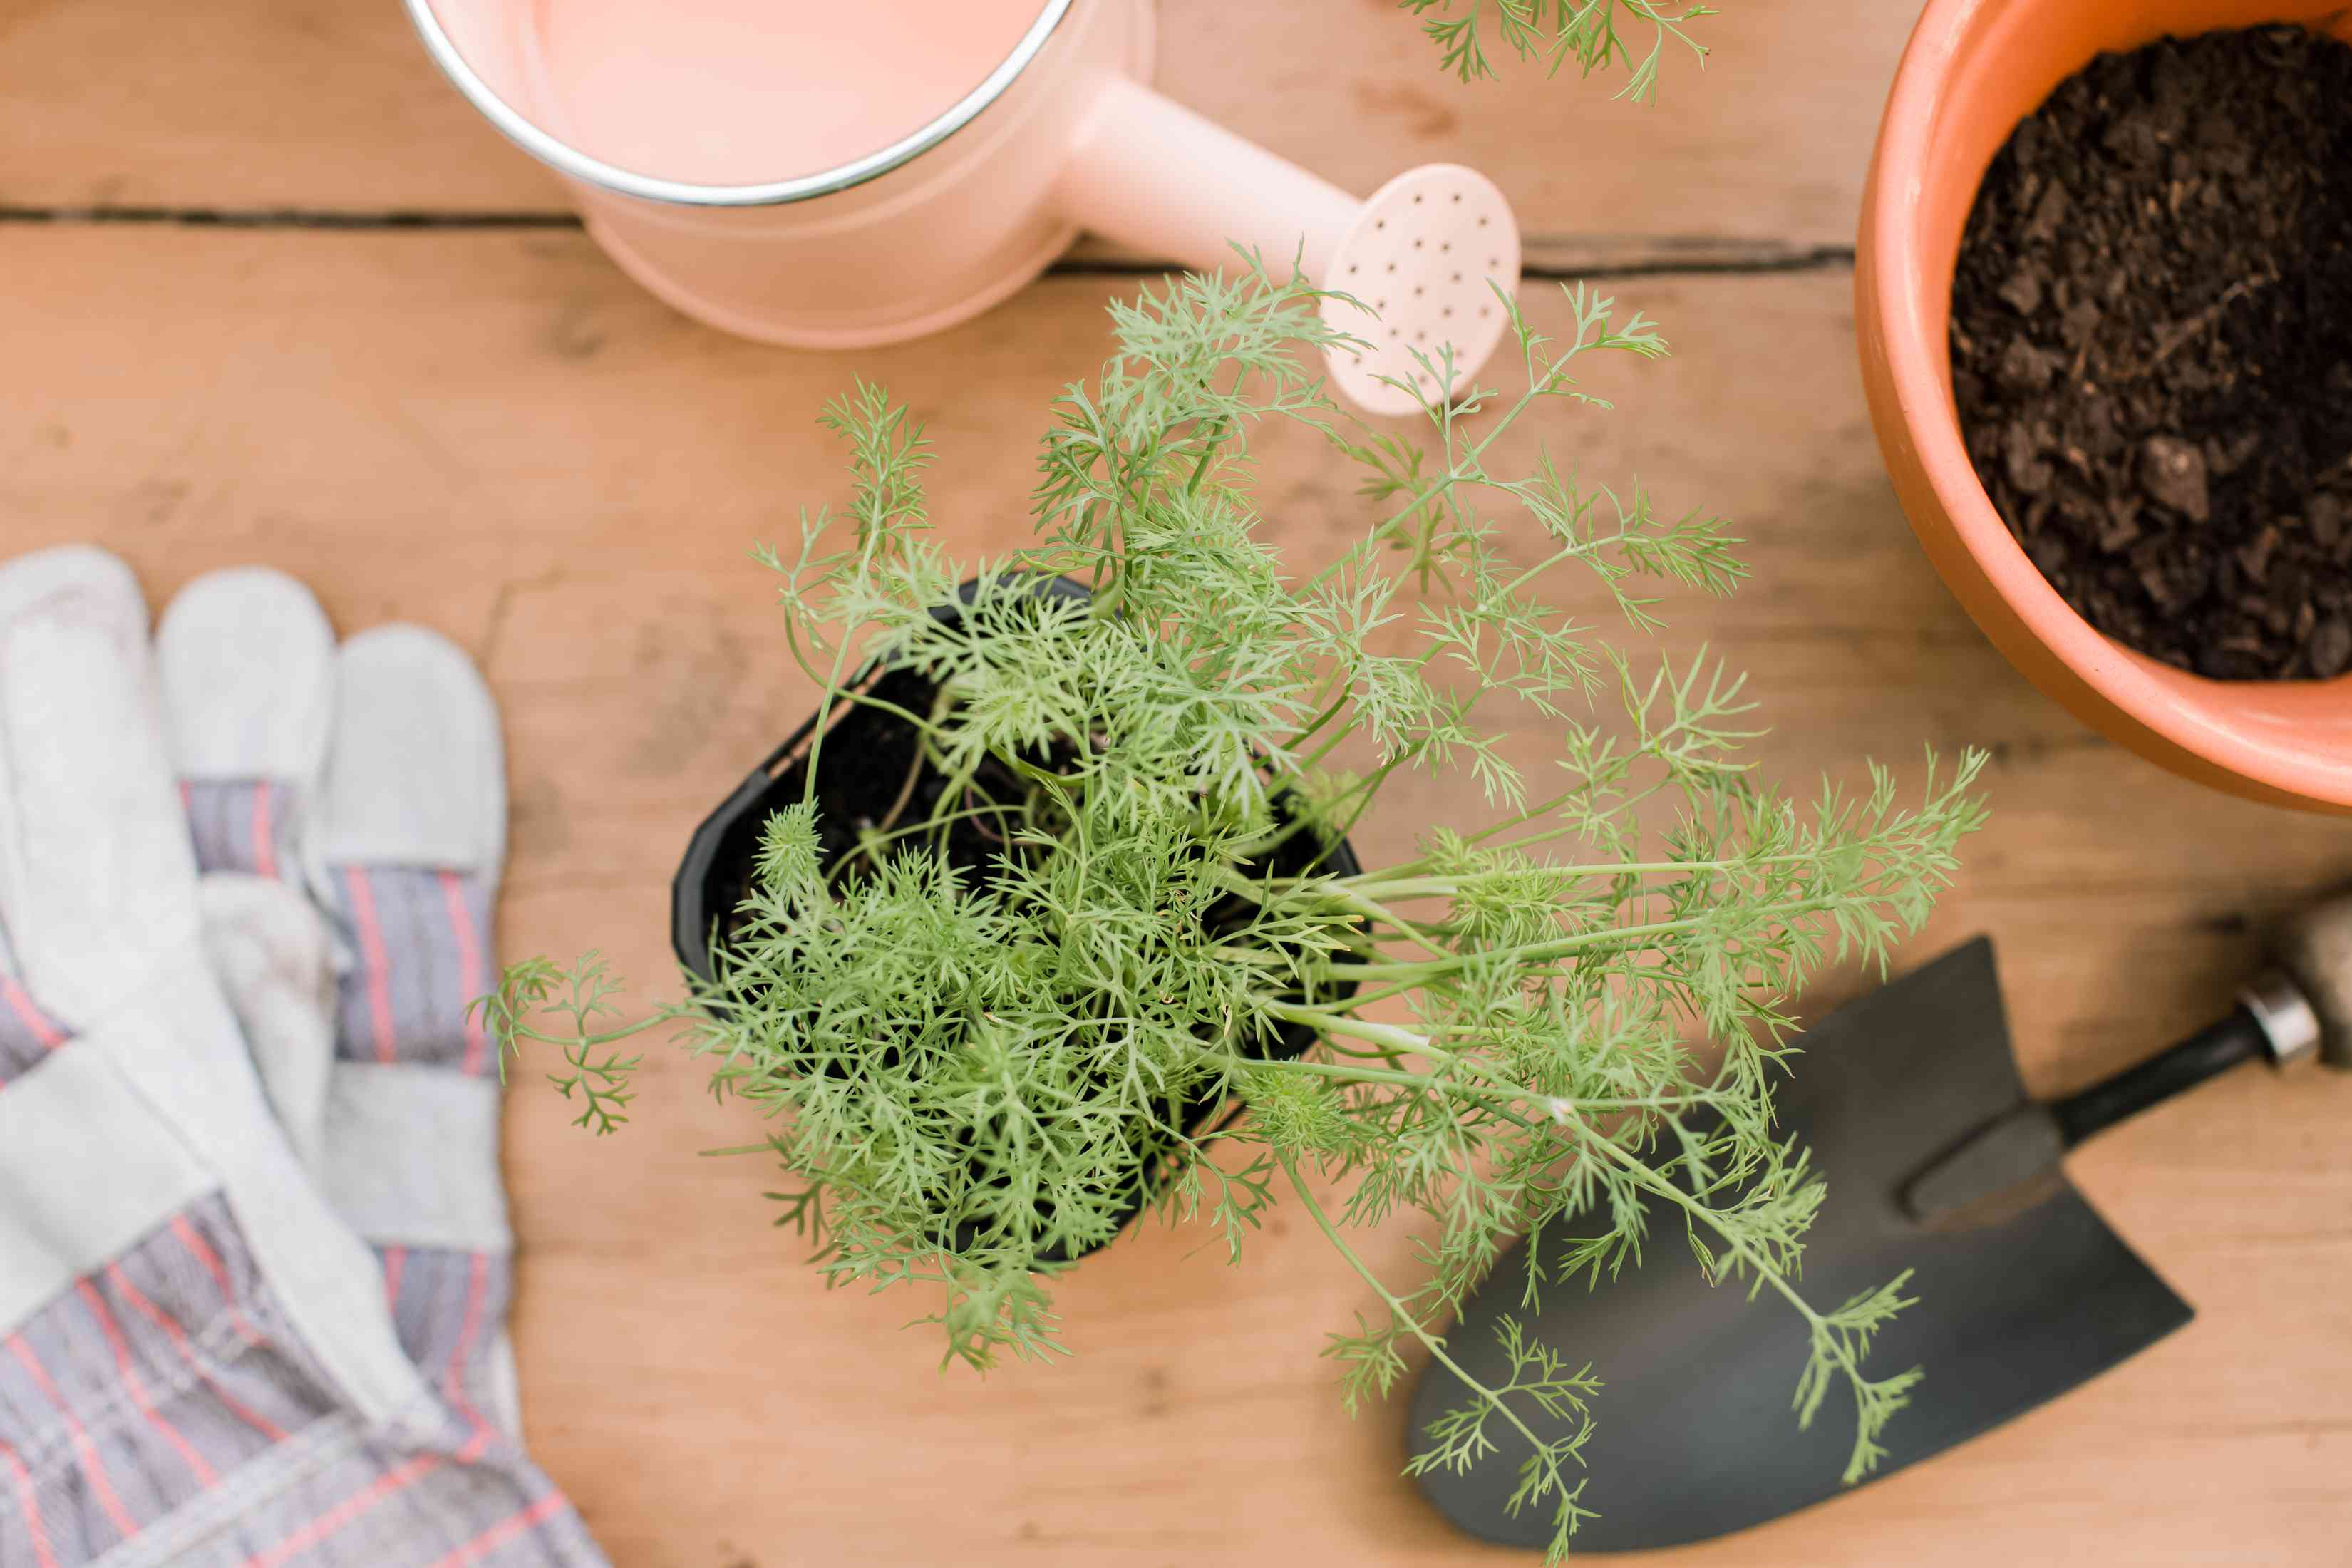 dill plant from overhead